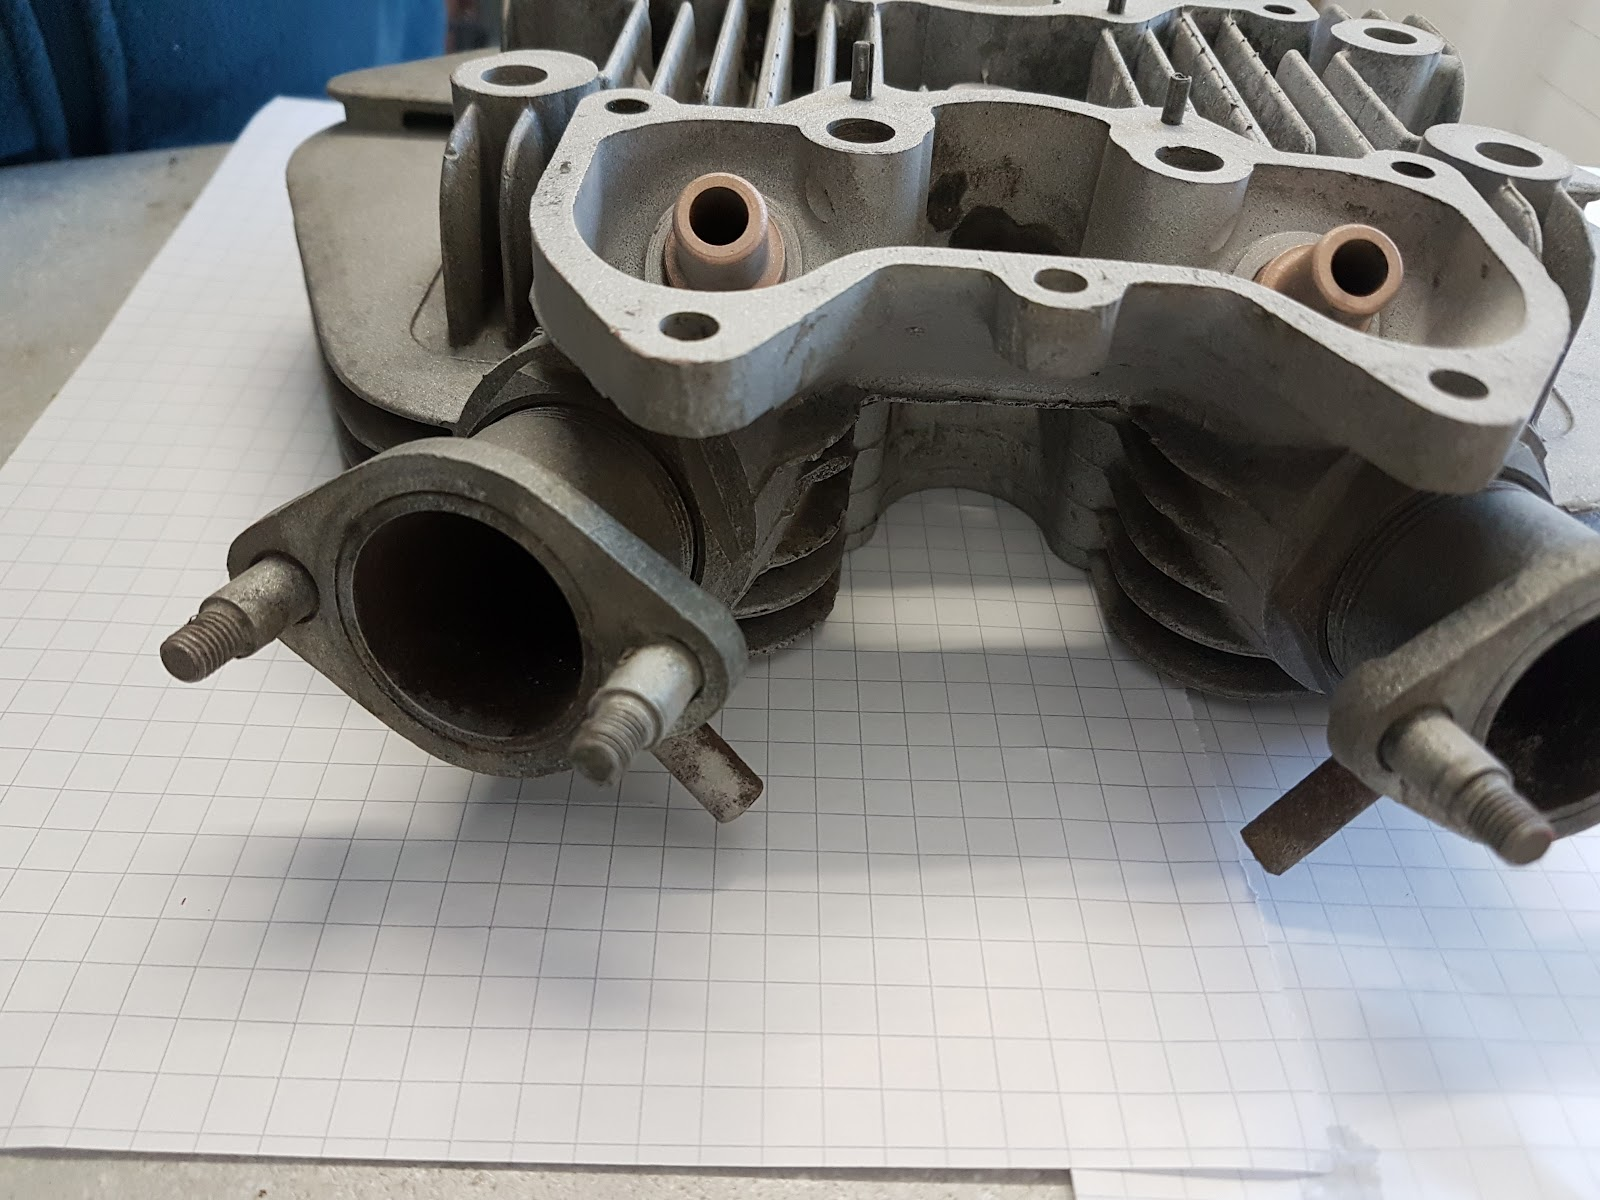 T120 cylinder head after sand blasting.